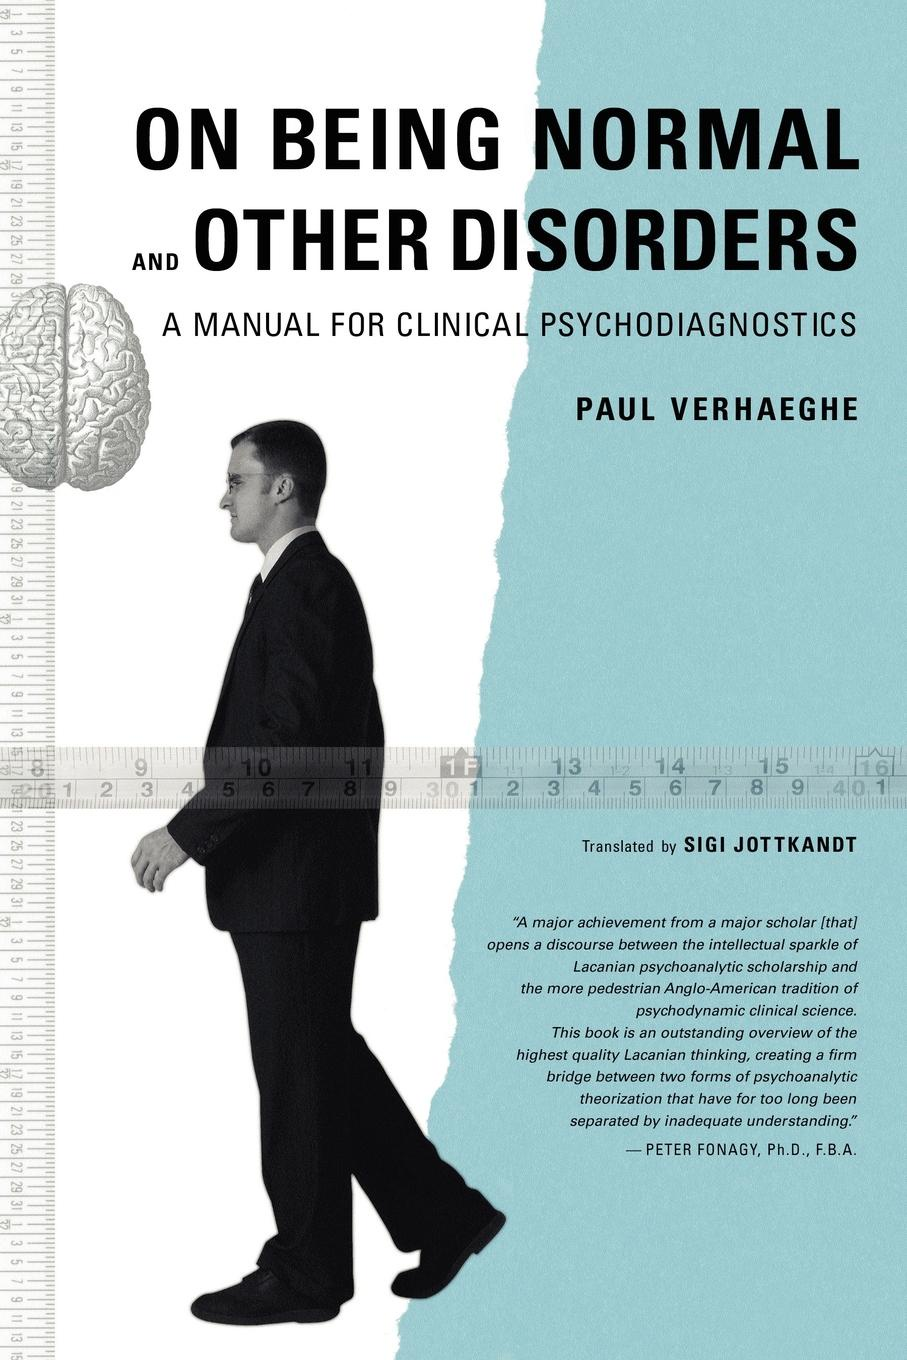 Paul Verhaeghe, Sigi Jottkandt On Being Normal and Other Disorders, A Manual For Clinical Psychodiagnostics medical disorders in pregnancy a manual for midwives